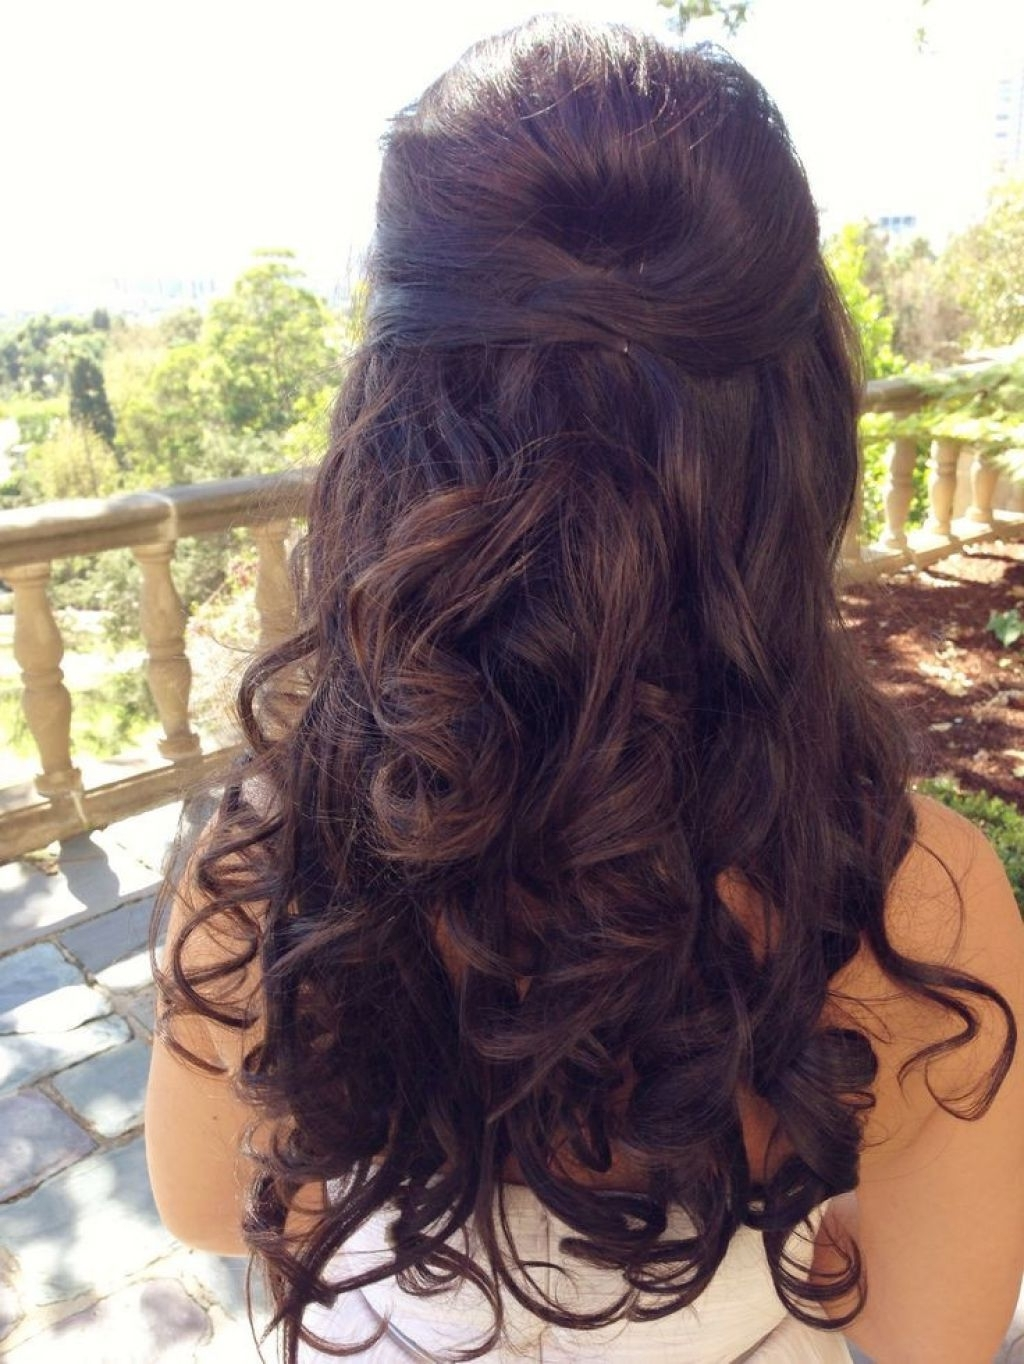 Long Wedding Hairstyle Half Up With Braided | Wedding Hairstyle Regarding Long Hair Half Updo Hairstyles (View 8 of 15)